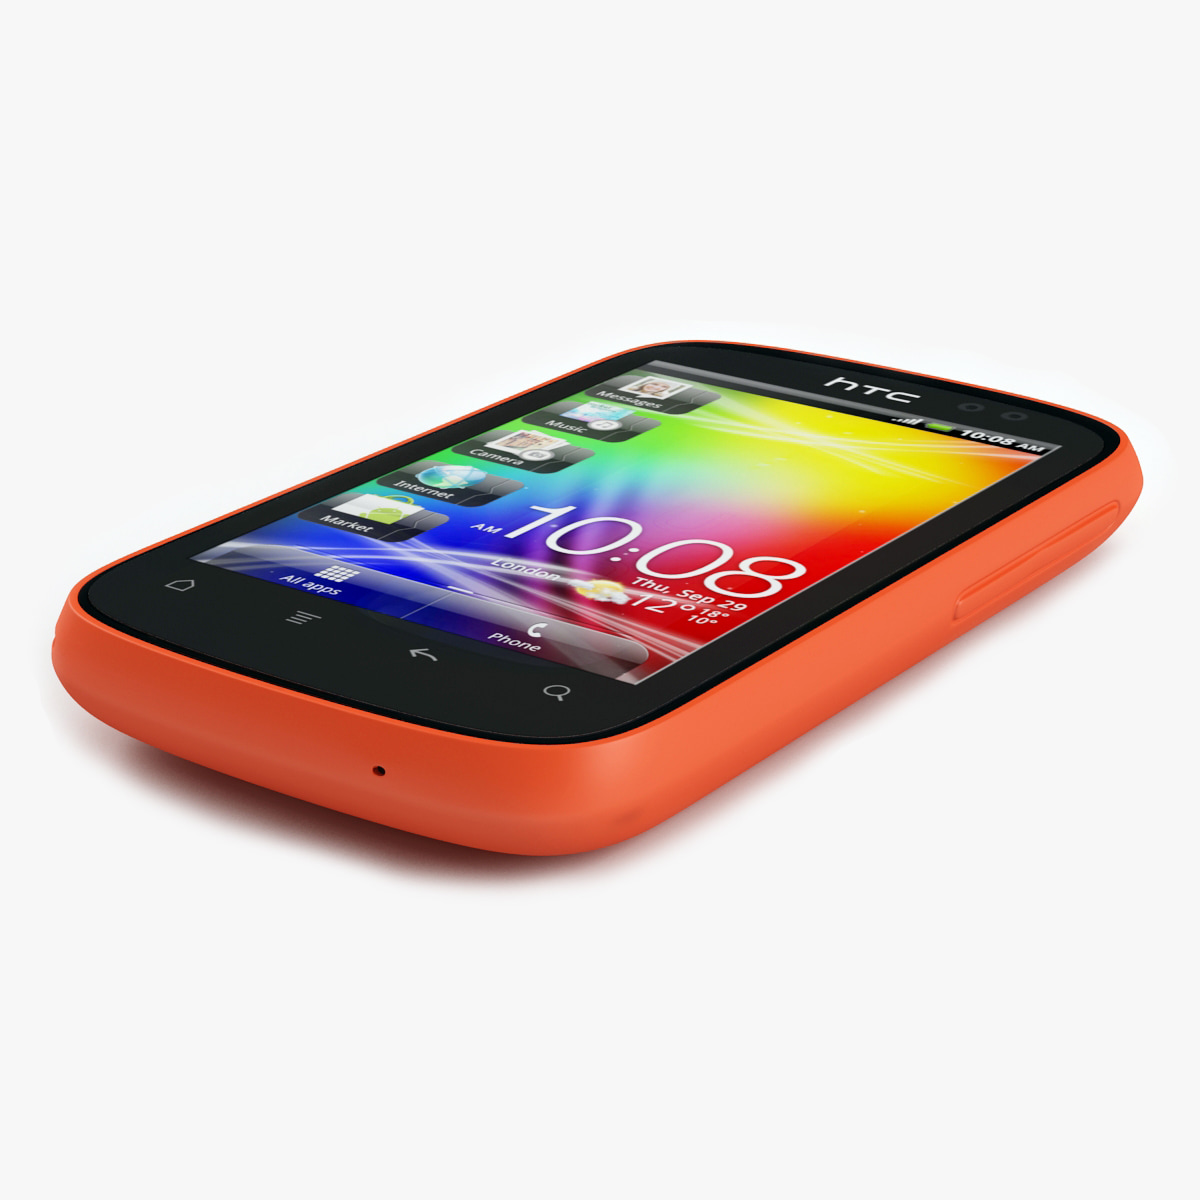 Htc_Explorer_Orange_00.jpg